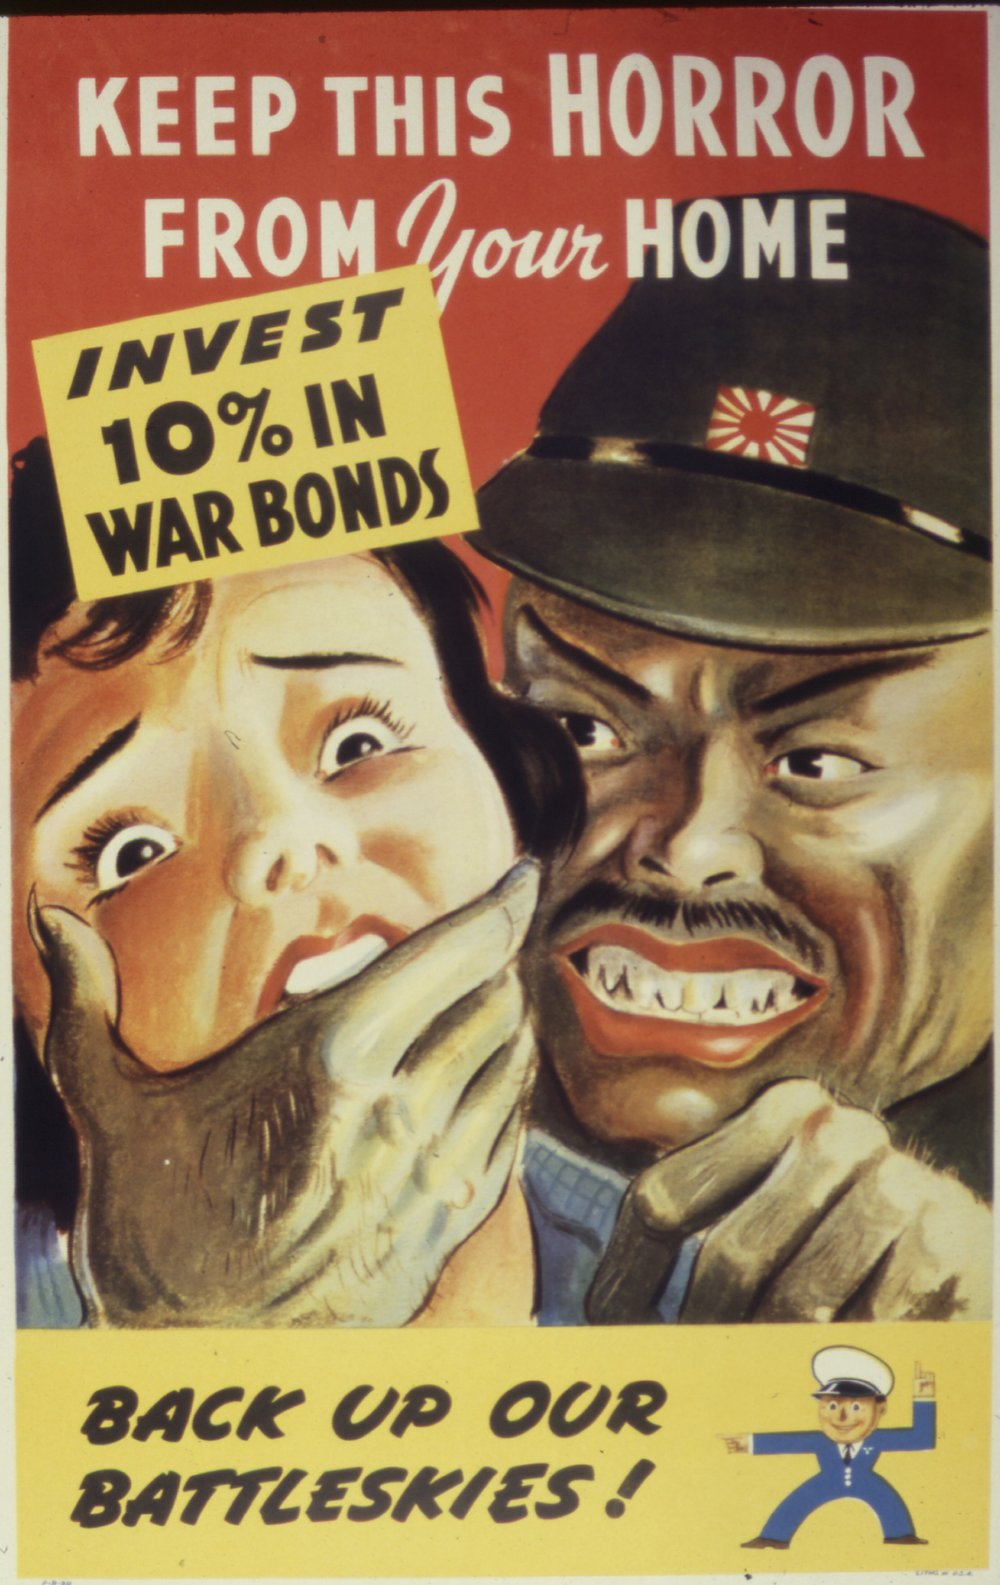 Keep_this_Horror_From_Your_Home._Invest_10_Percent_in_War_Bonds_Back_Up_our_Battleskies^_-_NARA_-_534105.jpg